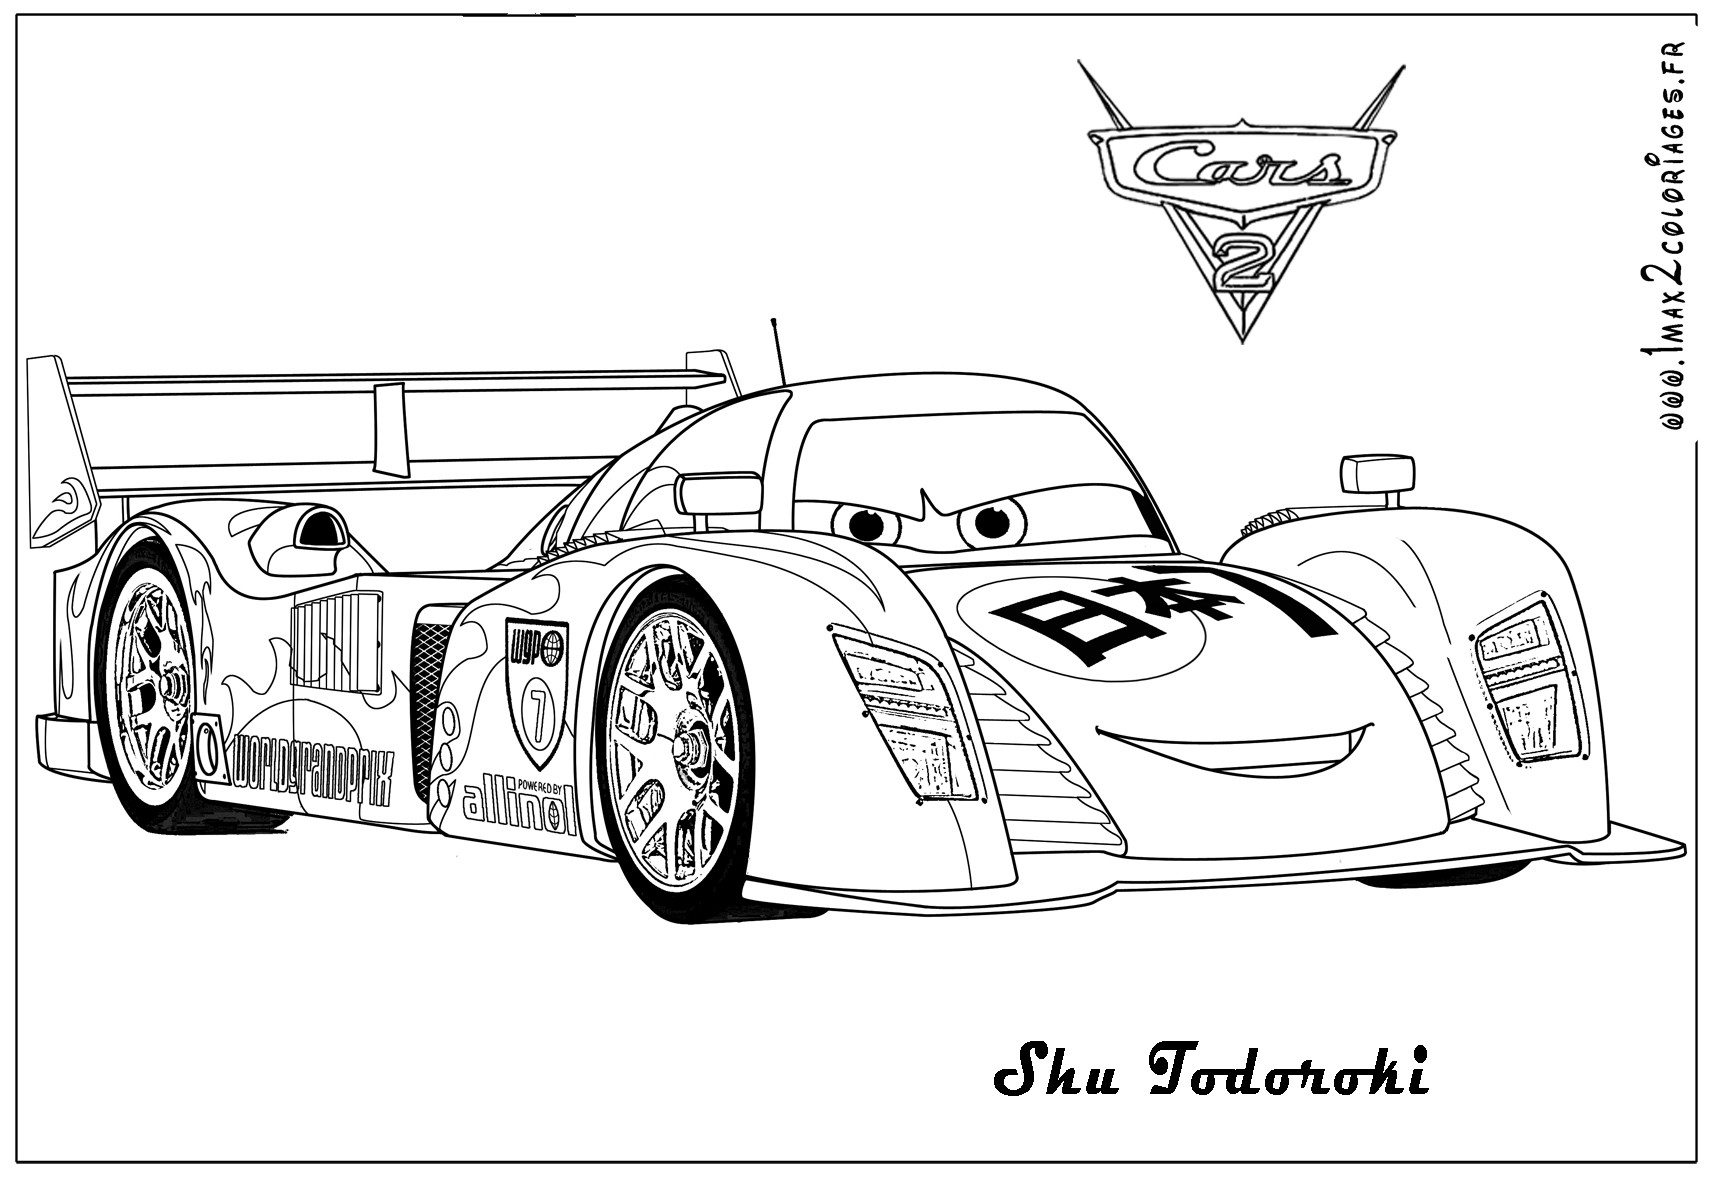 Cars 2 Free Coloring Pages  Free Printable Color Pages For Adults Cars 2 The Art Jinni